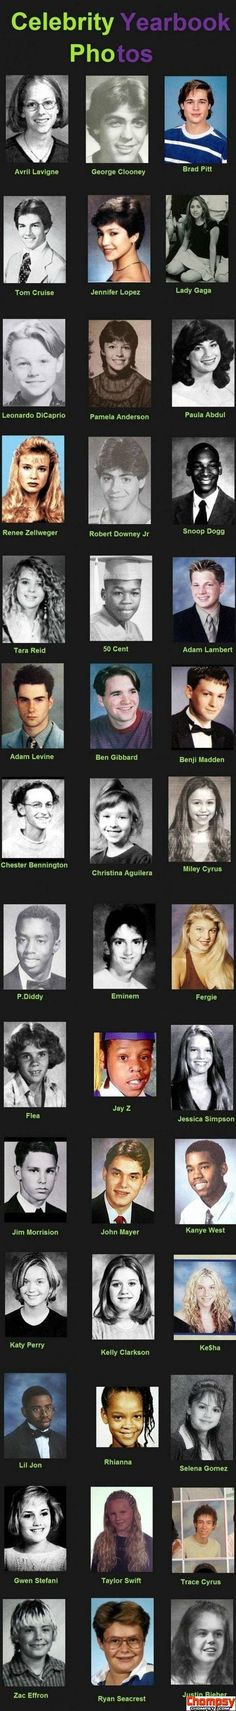 celebrity as kids ~ Zac Efron, Taylor Swift and Katy Perry give me hope XD